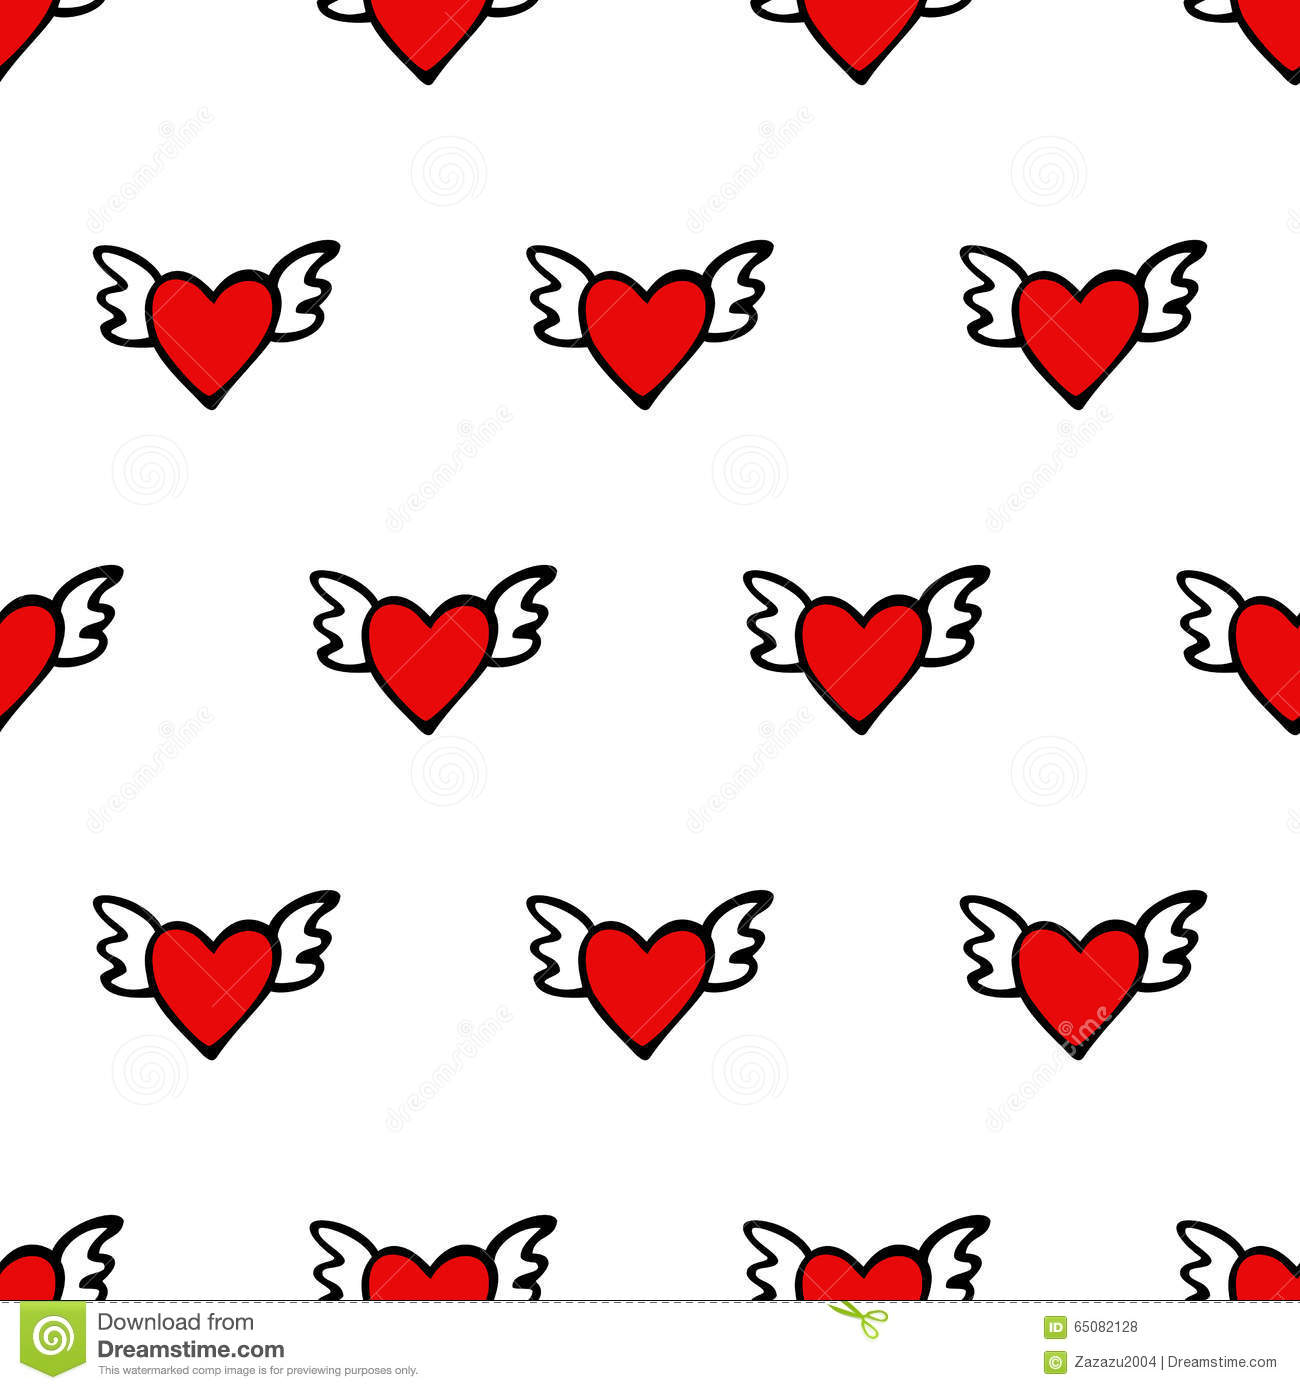 Seamless vector heart pattern for Valentines Day. Cute hearts with wings.